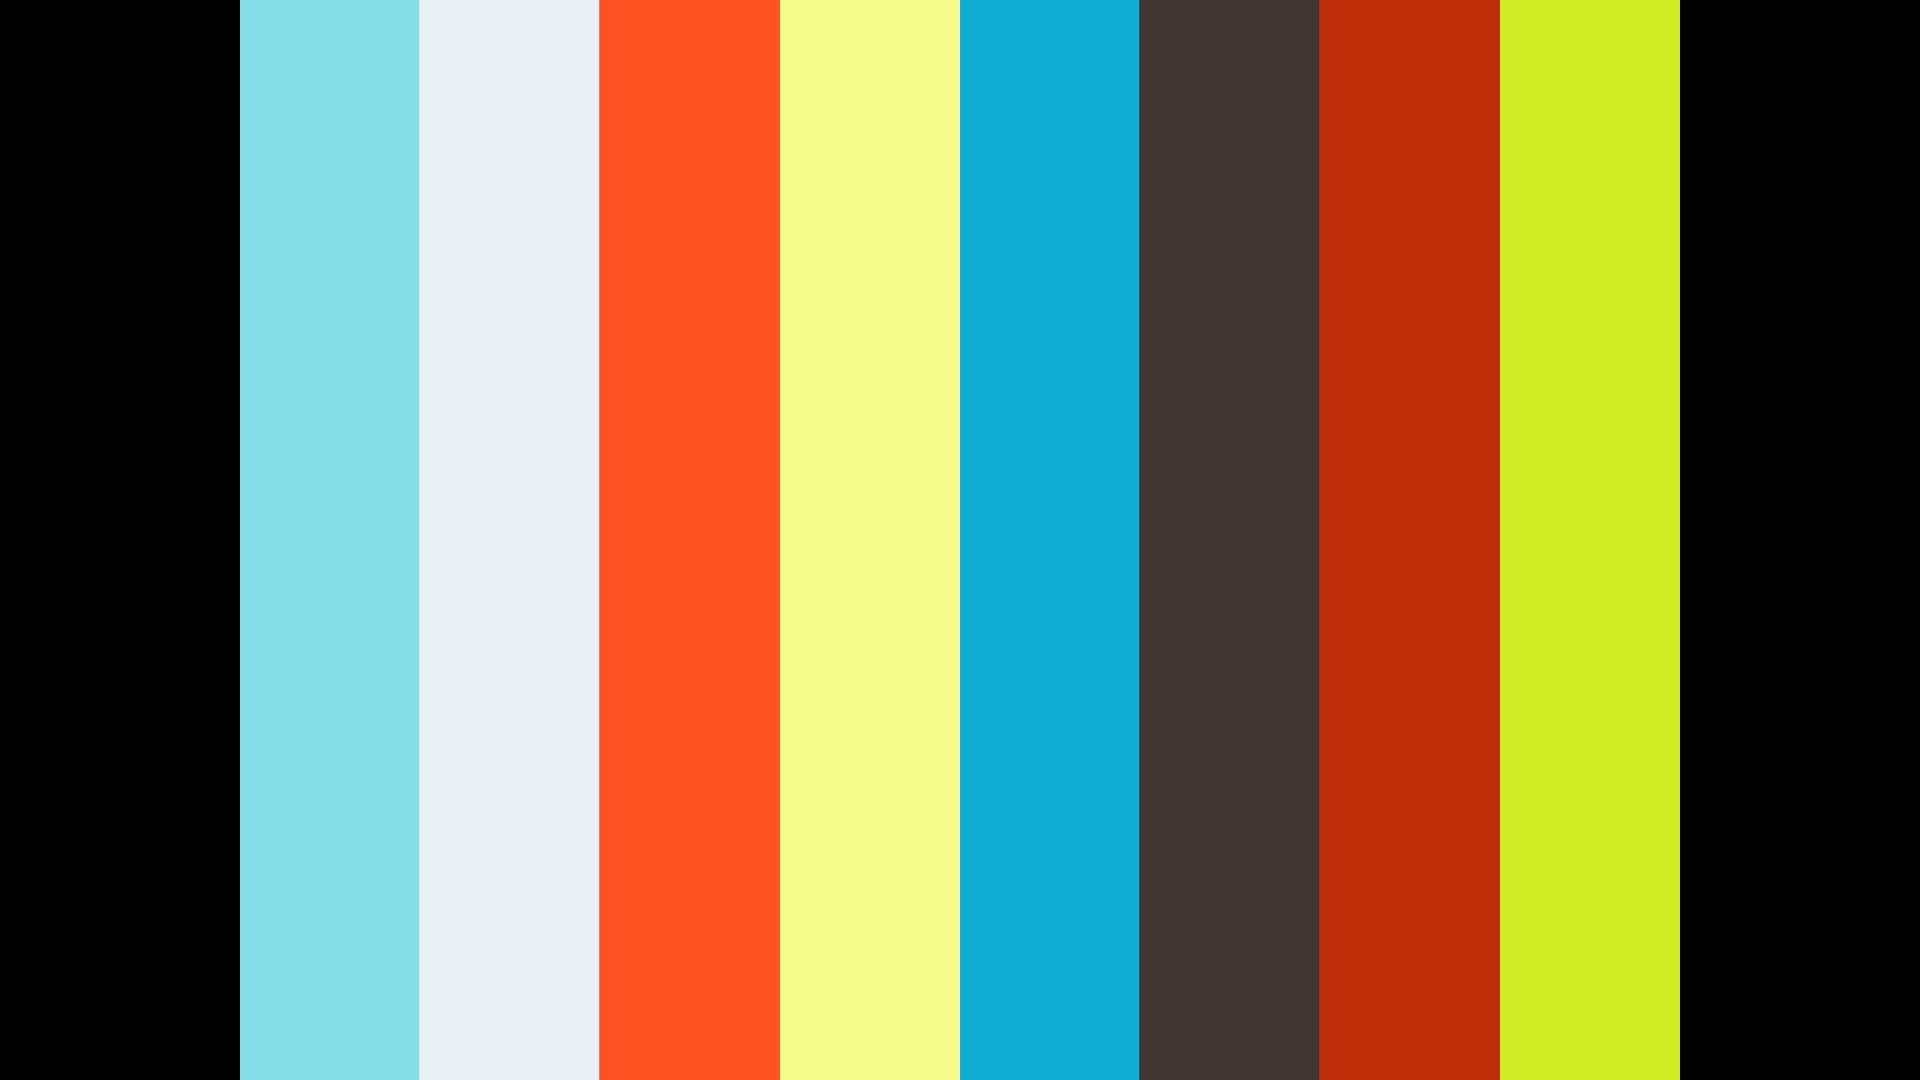 Financial Markets - Too Good to be True?